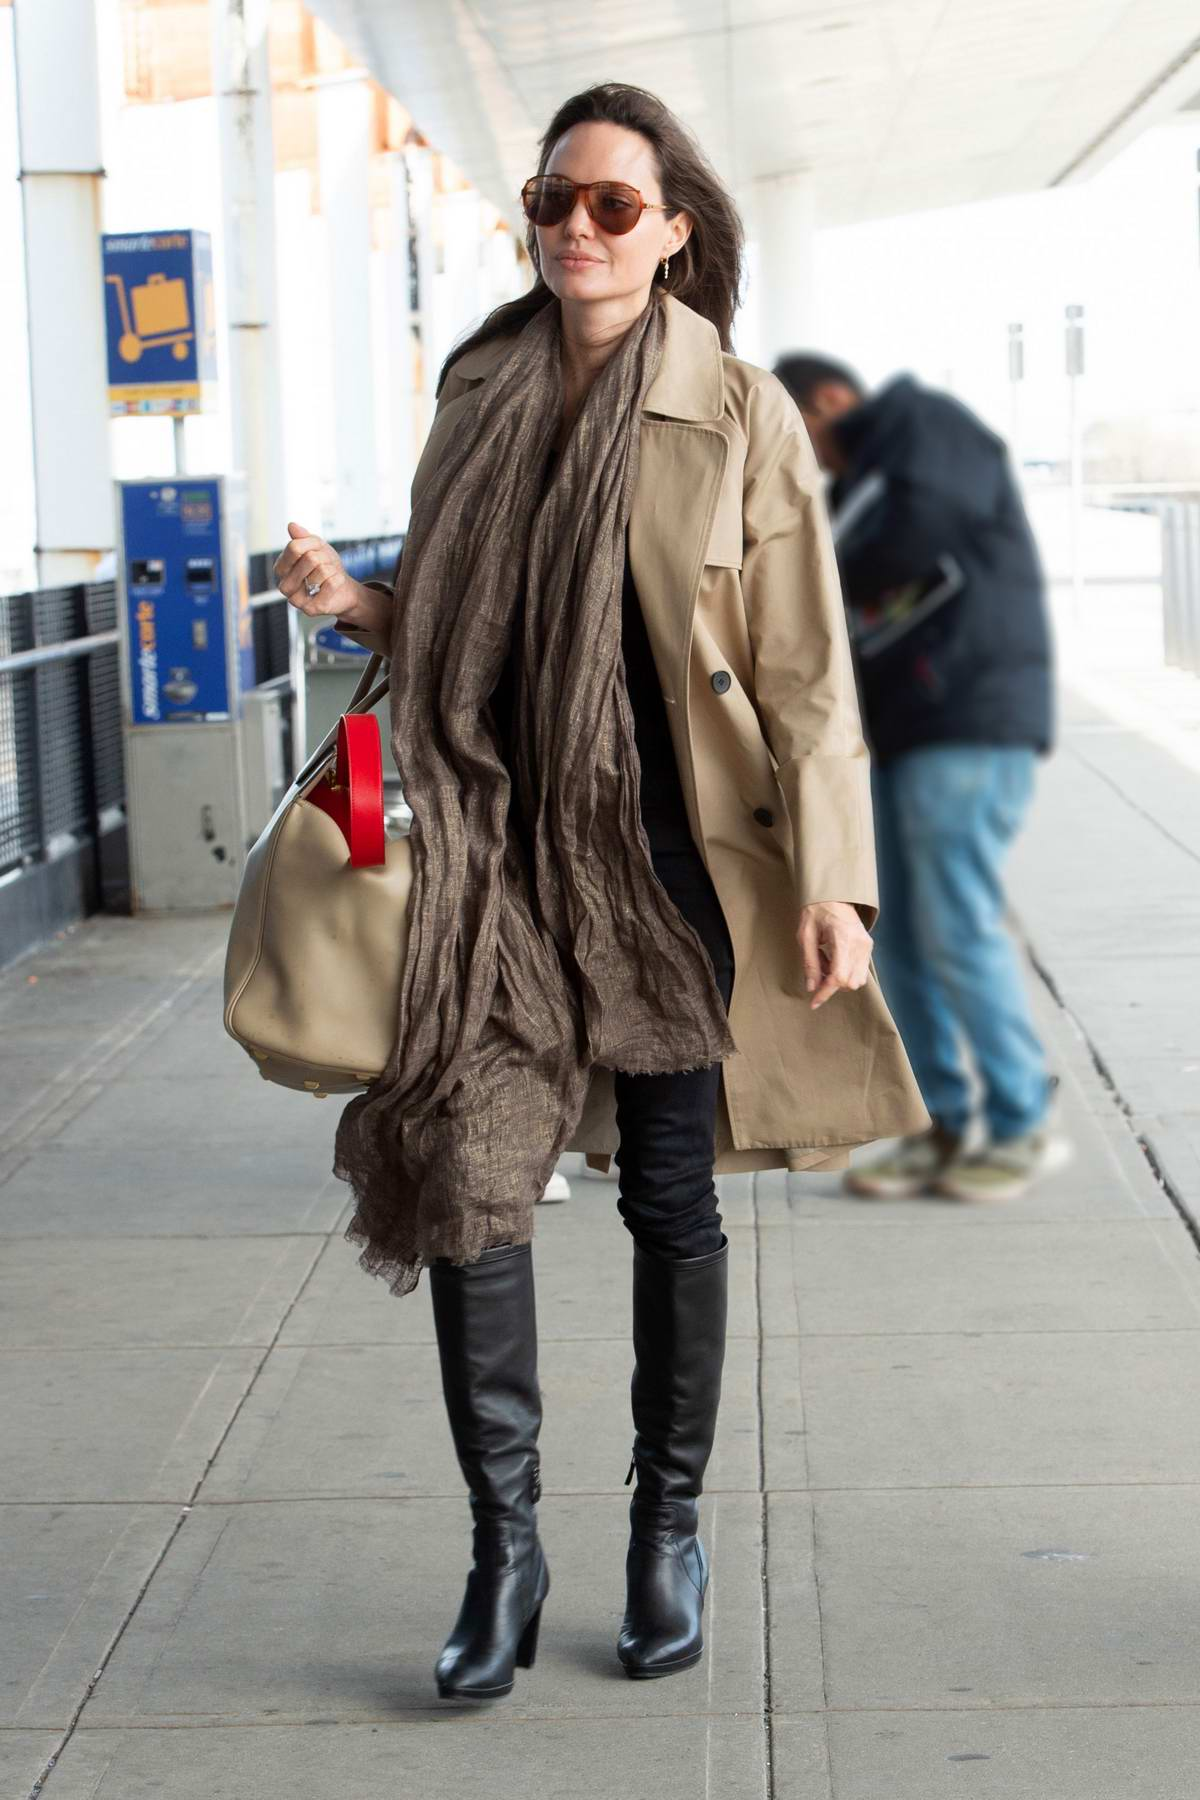 Angelina Jolie waves for the camera as she arrives at JFK Airport in New York City